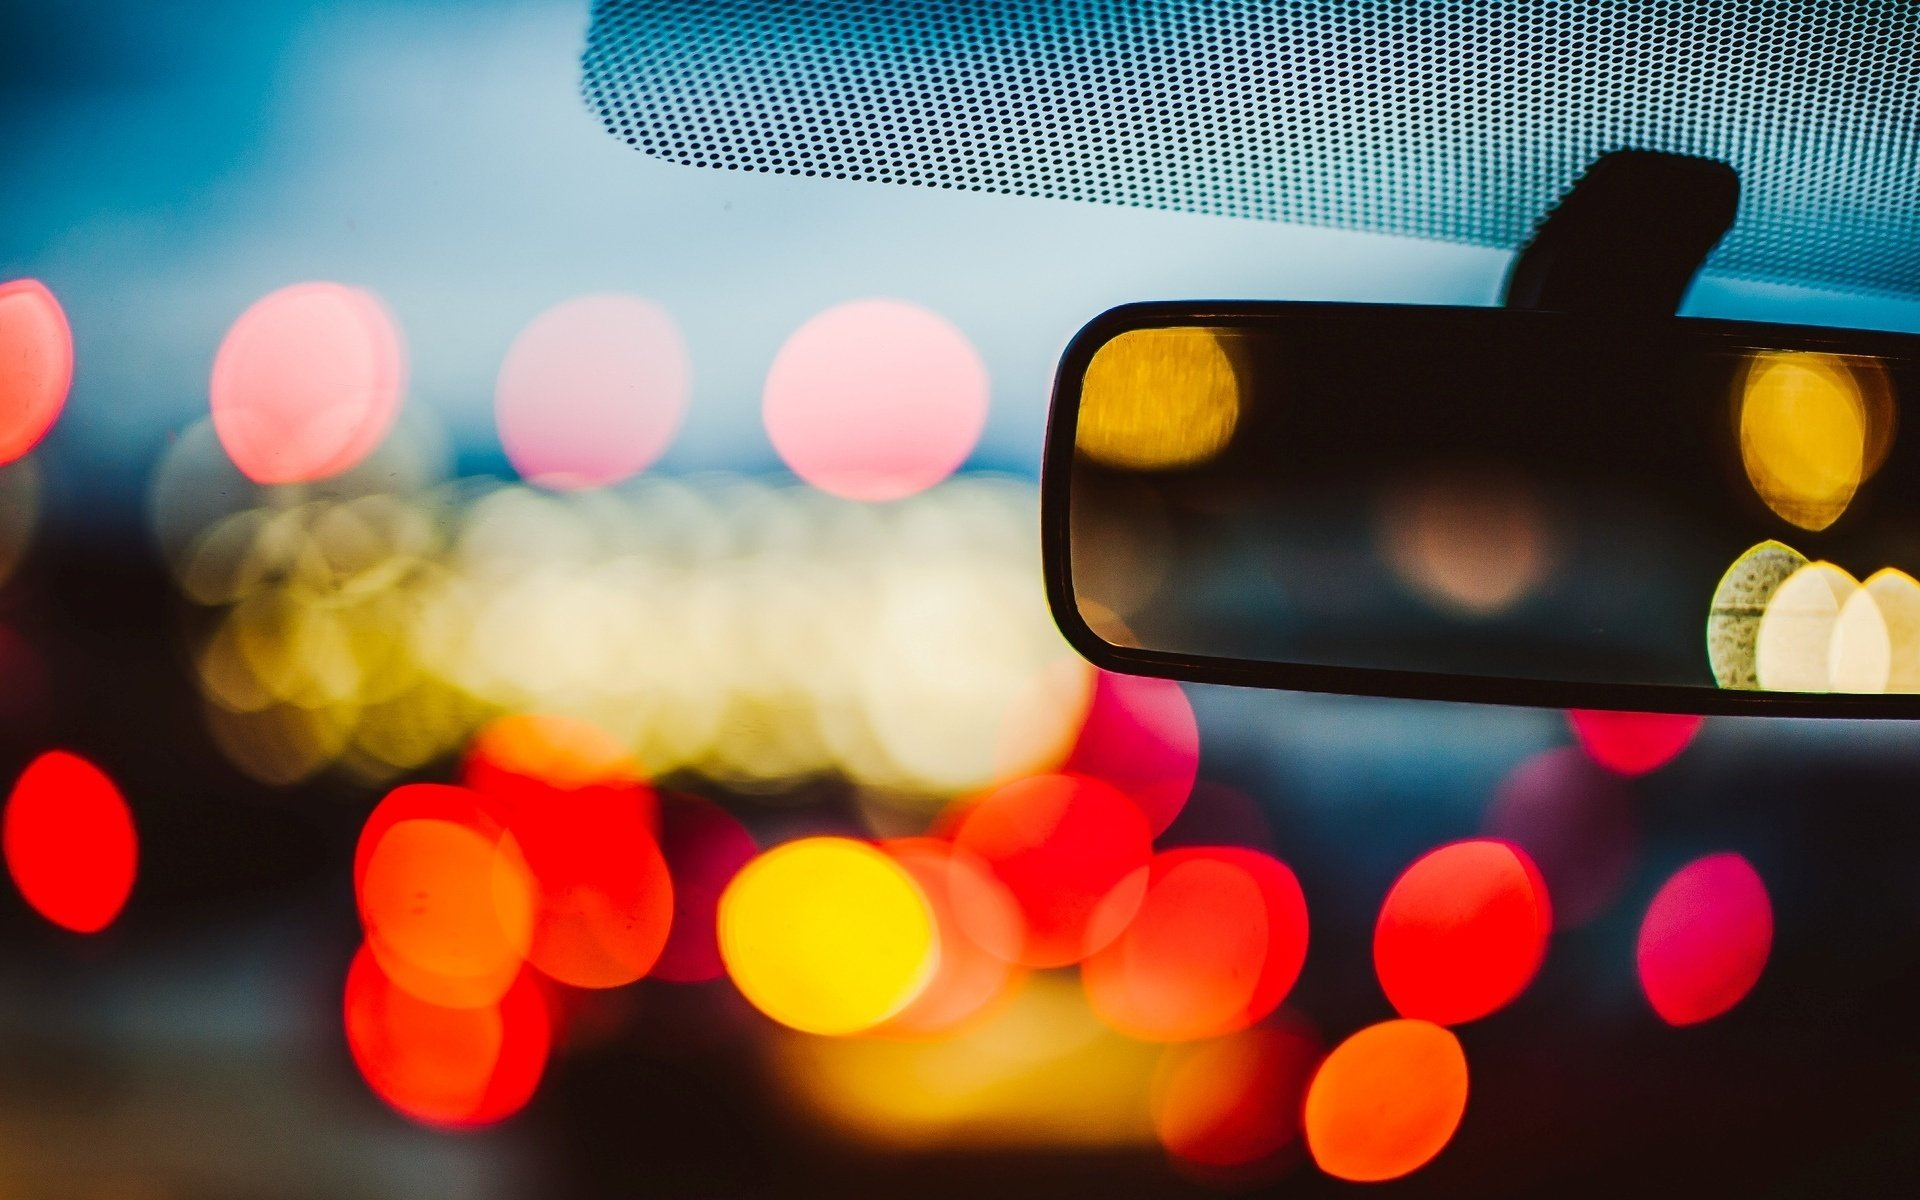 25 Colorful Hd Wallpapers To Light Up Your Display: Car Mirror Bokeh Light Mood Night Wallpaper